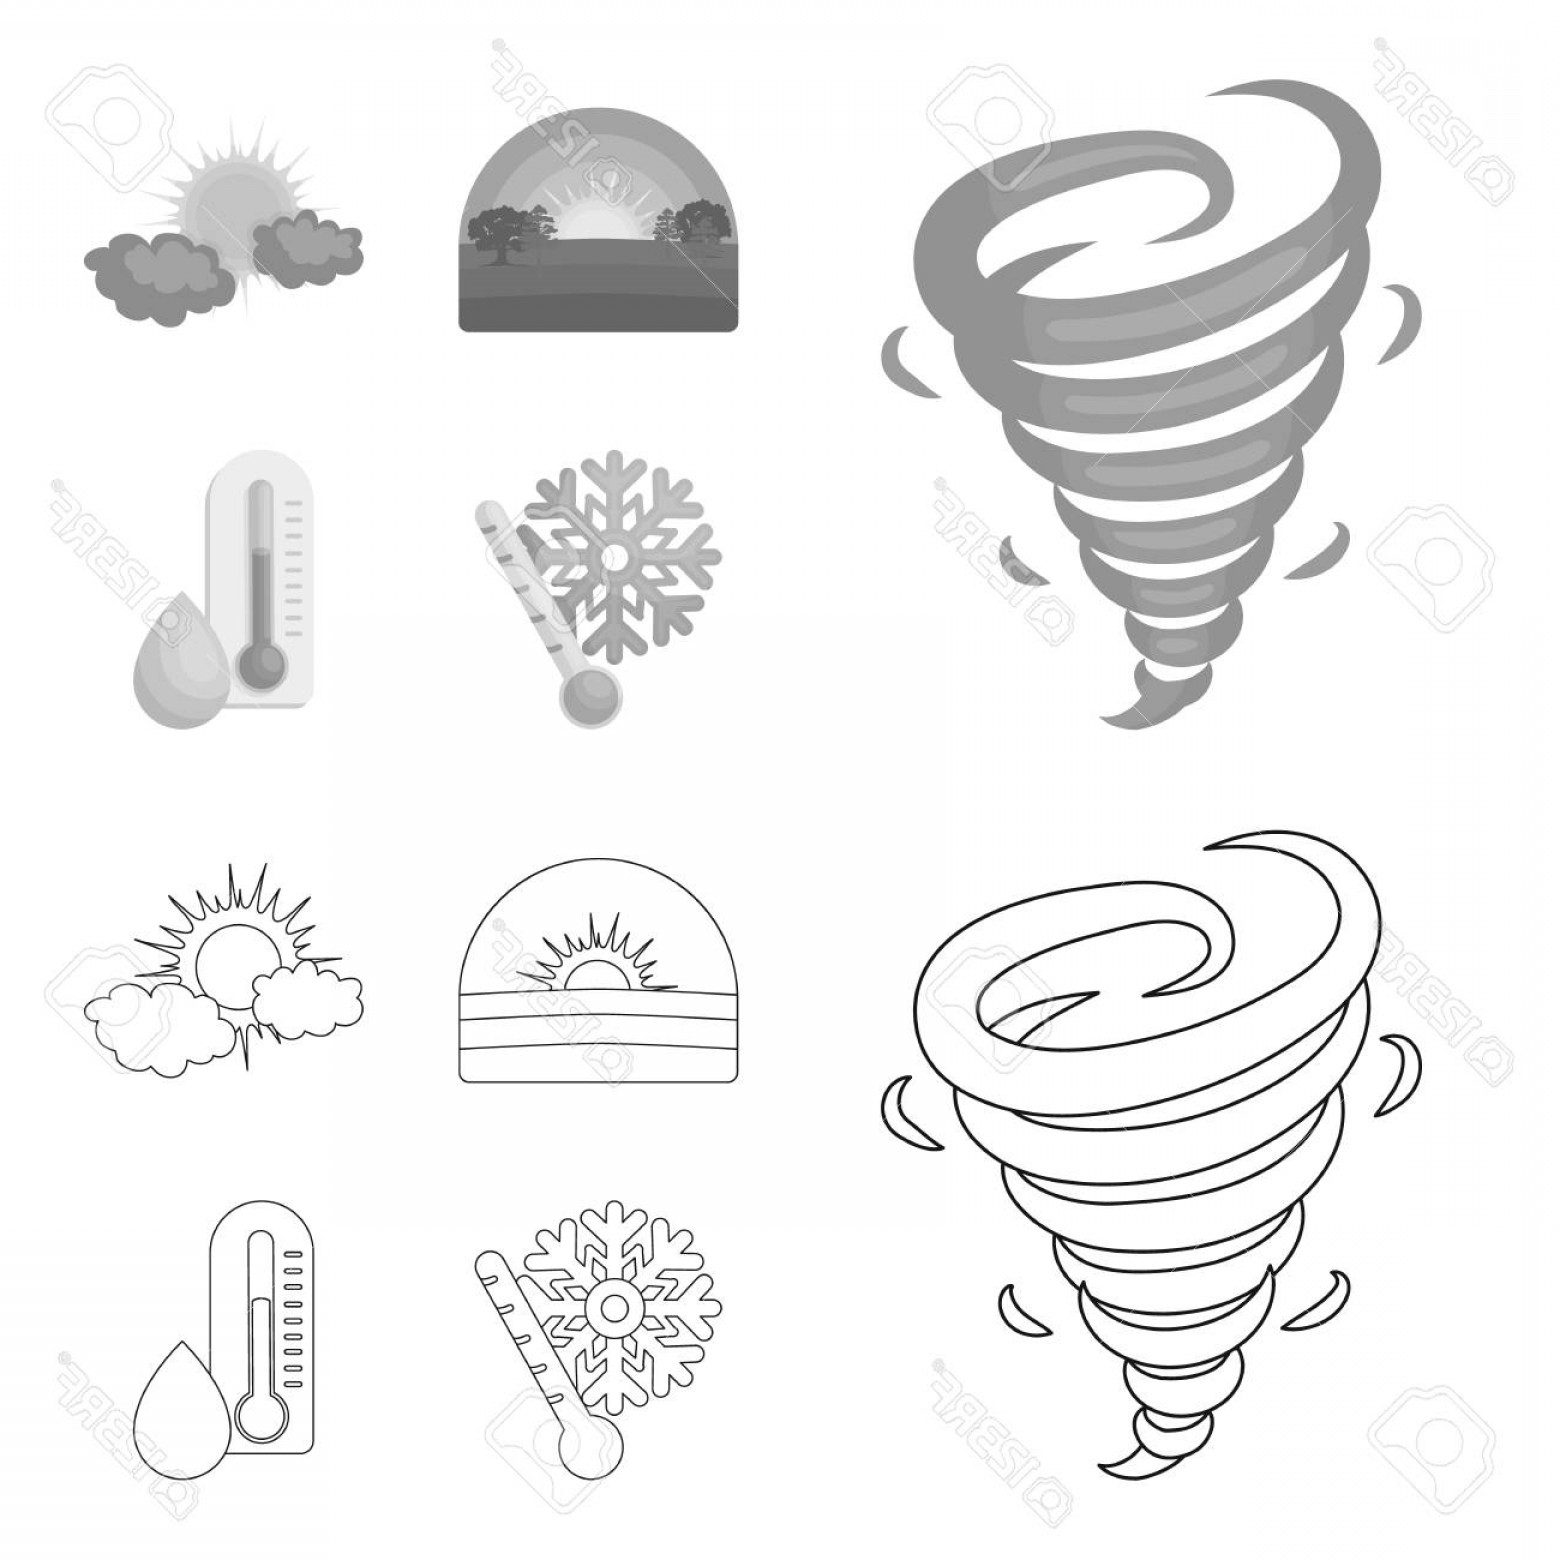 Snow Cone Outline Vector: Photostock Vector Tornado Sunrise Cloudiness Snow And Frost The Weather Set Collection Icons In Outline Monochrome Sty